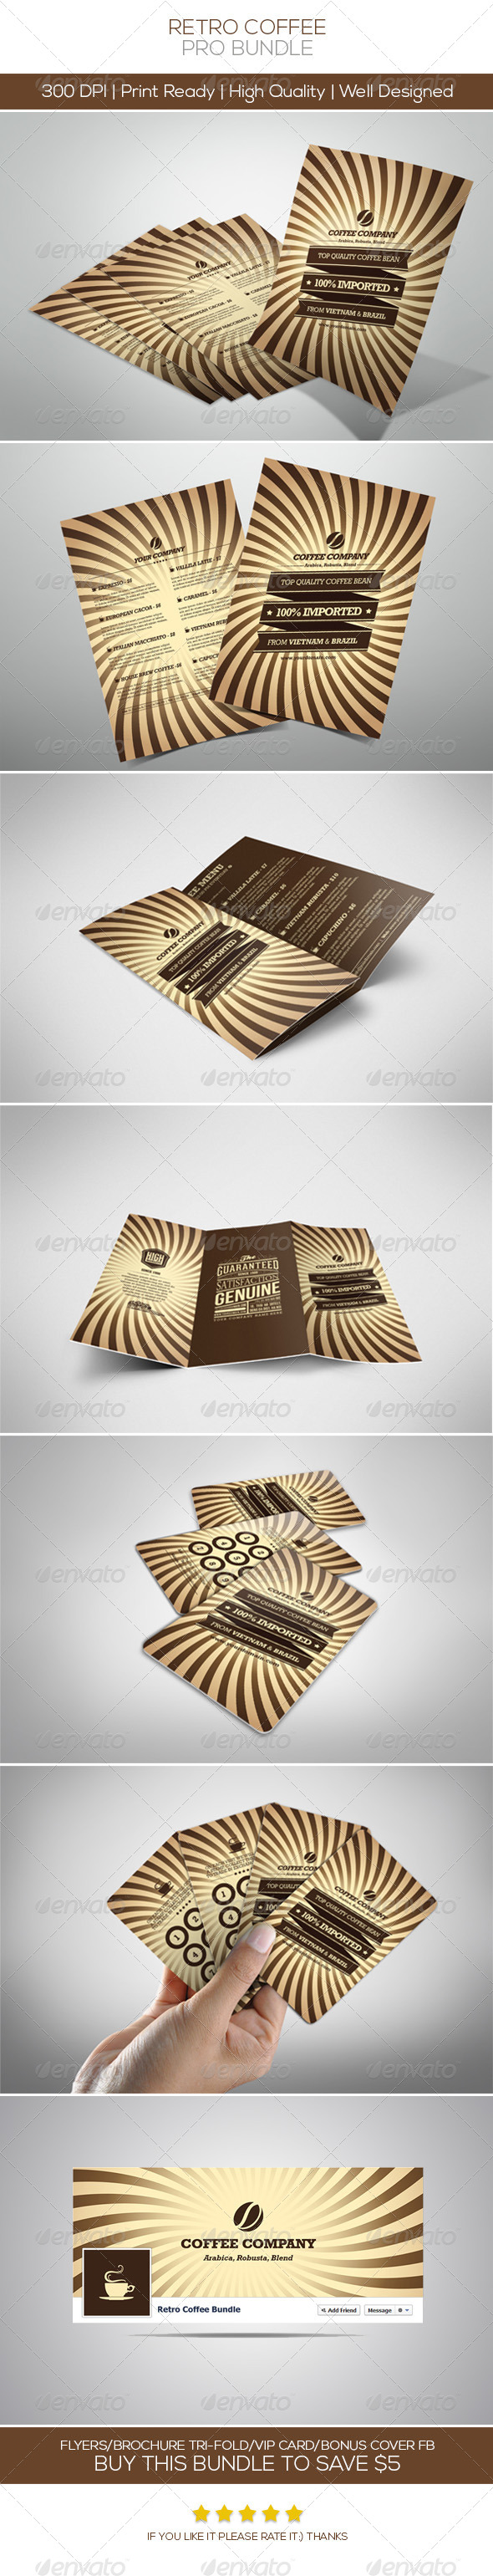 Retro Coffee Bundle